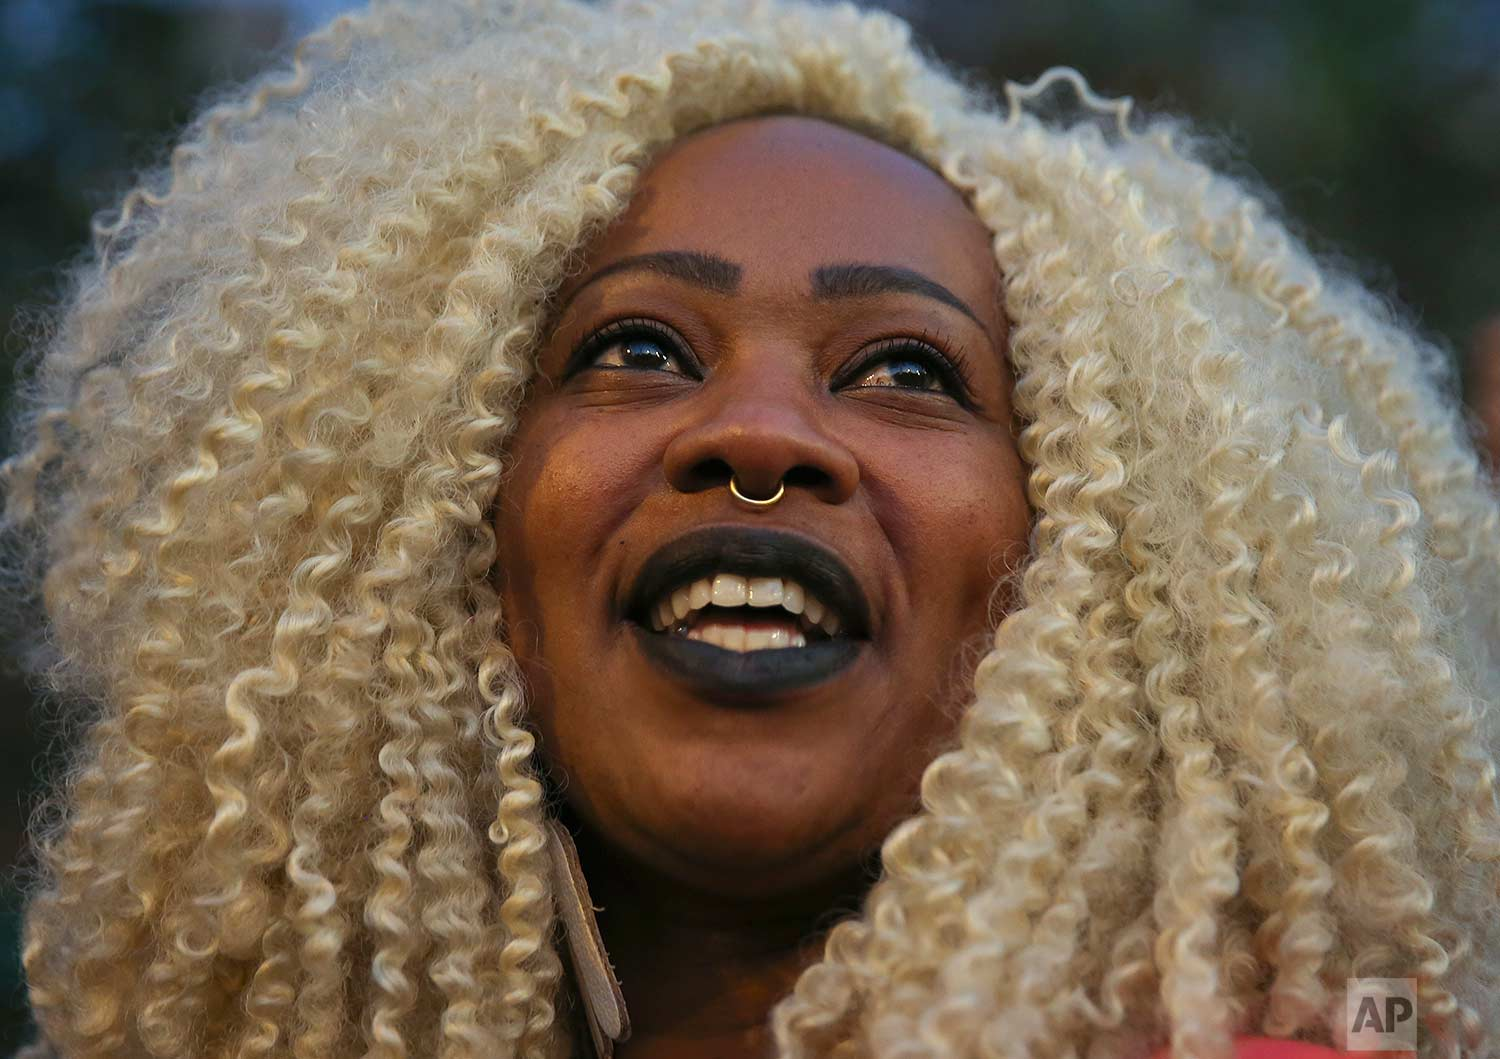 Isabel Nunes, who works as a beautician, attends a women's march to mark the International Afro-Latin American and Afro-Caribbean Women's Day, and protest against racist and sexist oppression, in Sao Paulo, Brazil, Tuesday, July 25, 2017. (AP Photo/Andre Penner)